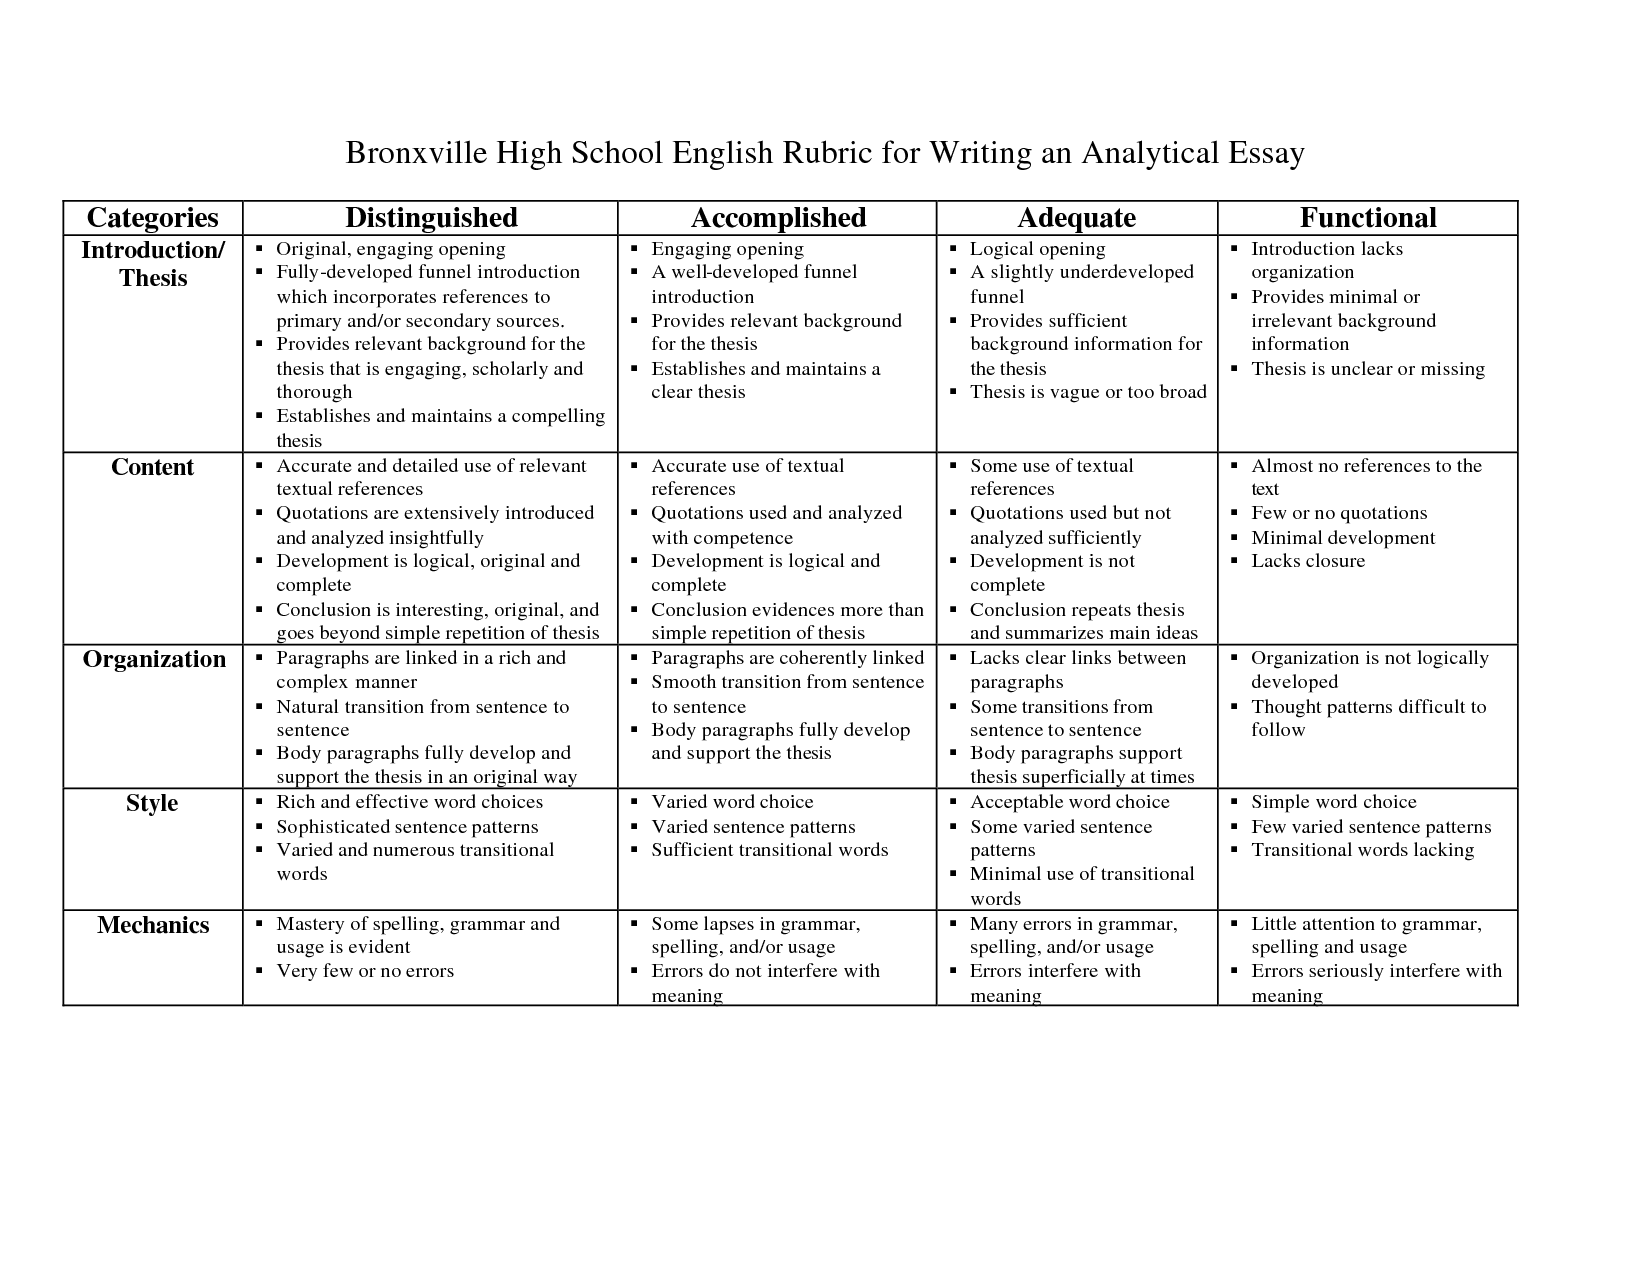 essay rubric examples Rubric used for grading an analytical essay (sociology) (this rubric was developed by pablo gaston and relies on the example rubrics presented by the gsi teaching and resource center, uc berkeley.